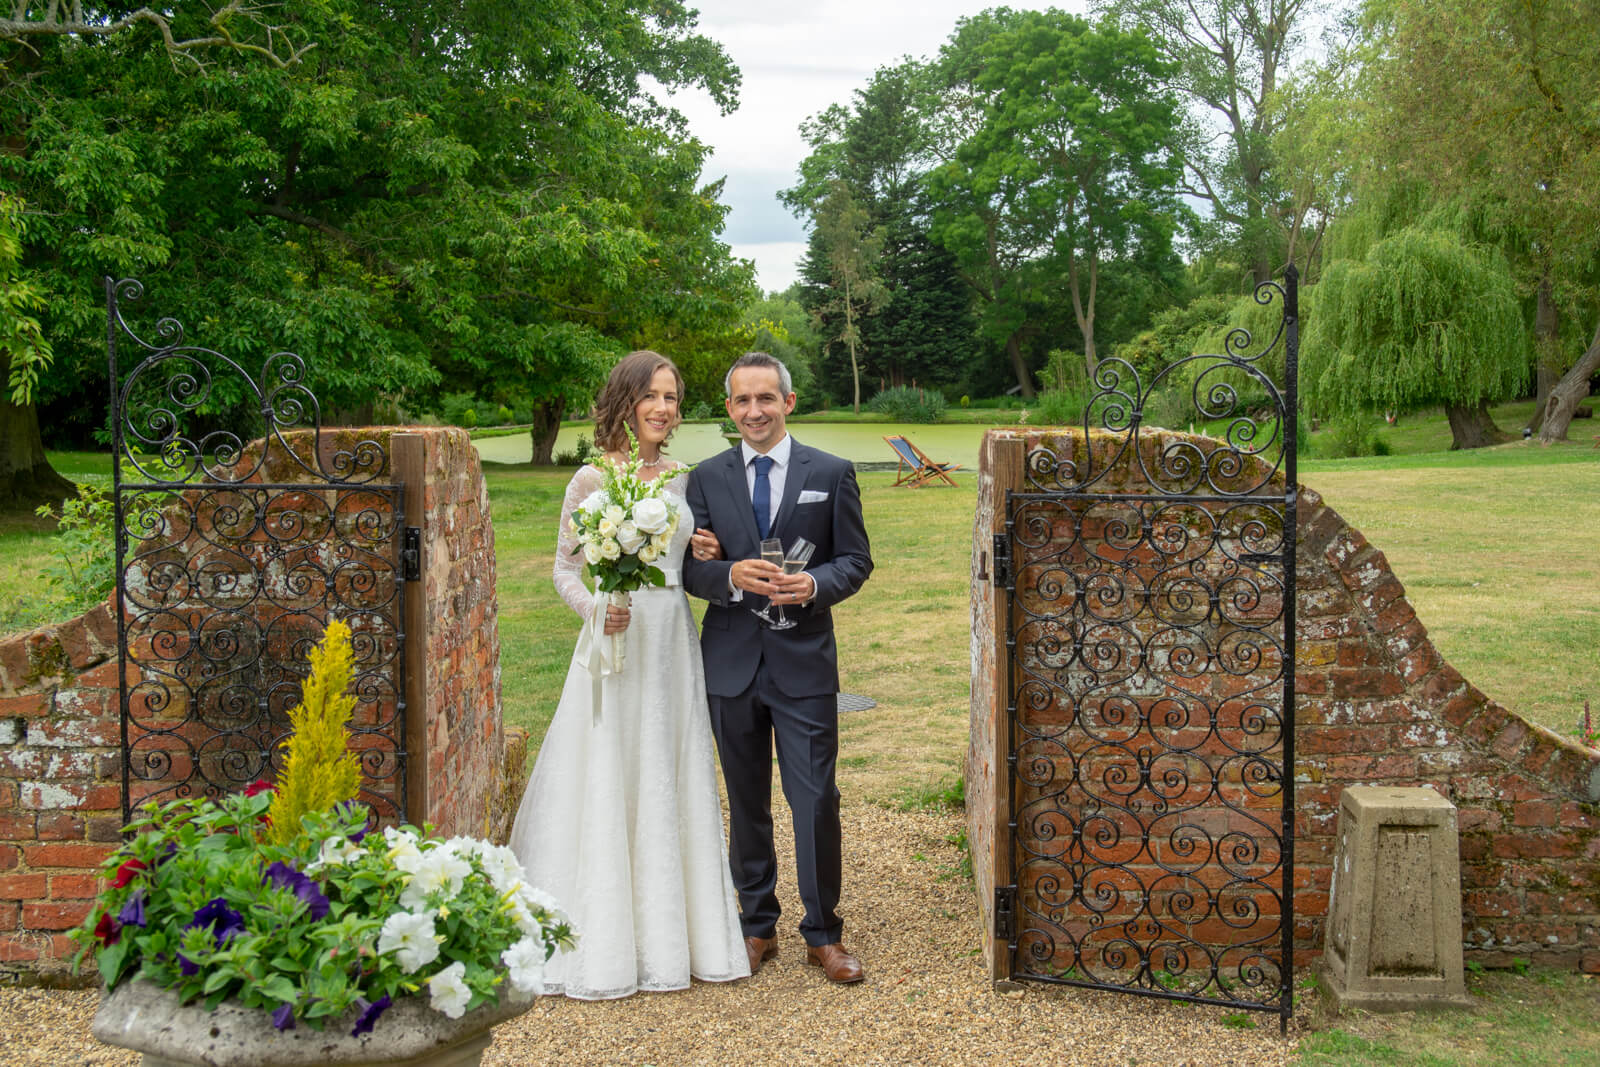 Portrait of the bride and groom standing in a redbrick and iron gateway in a country garden